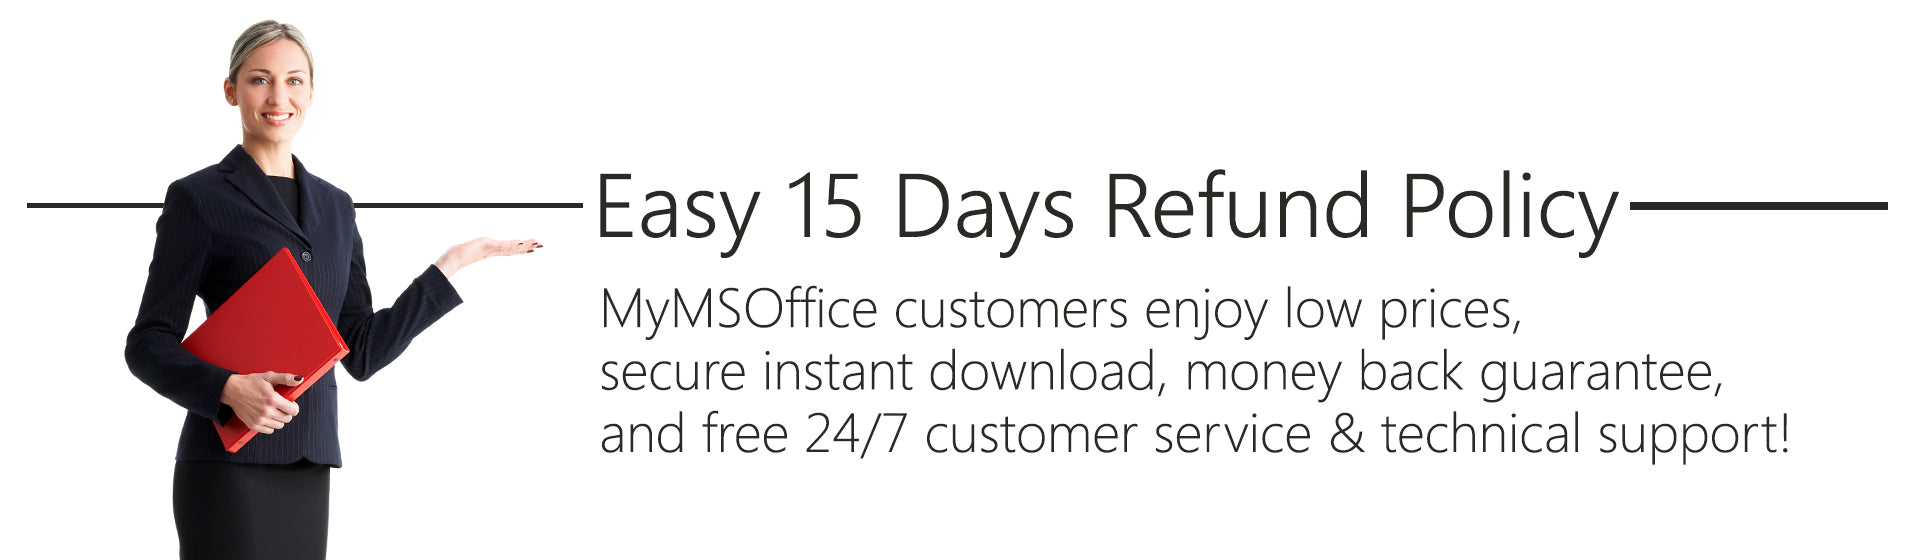 easy refund policy